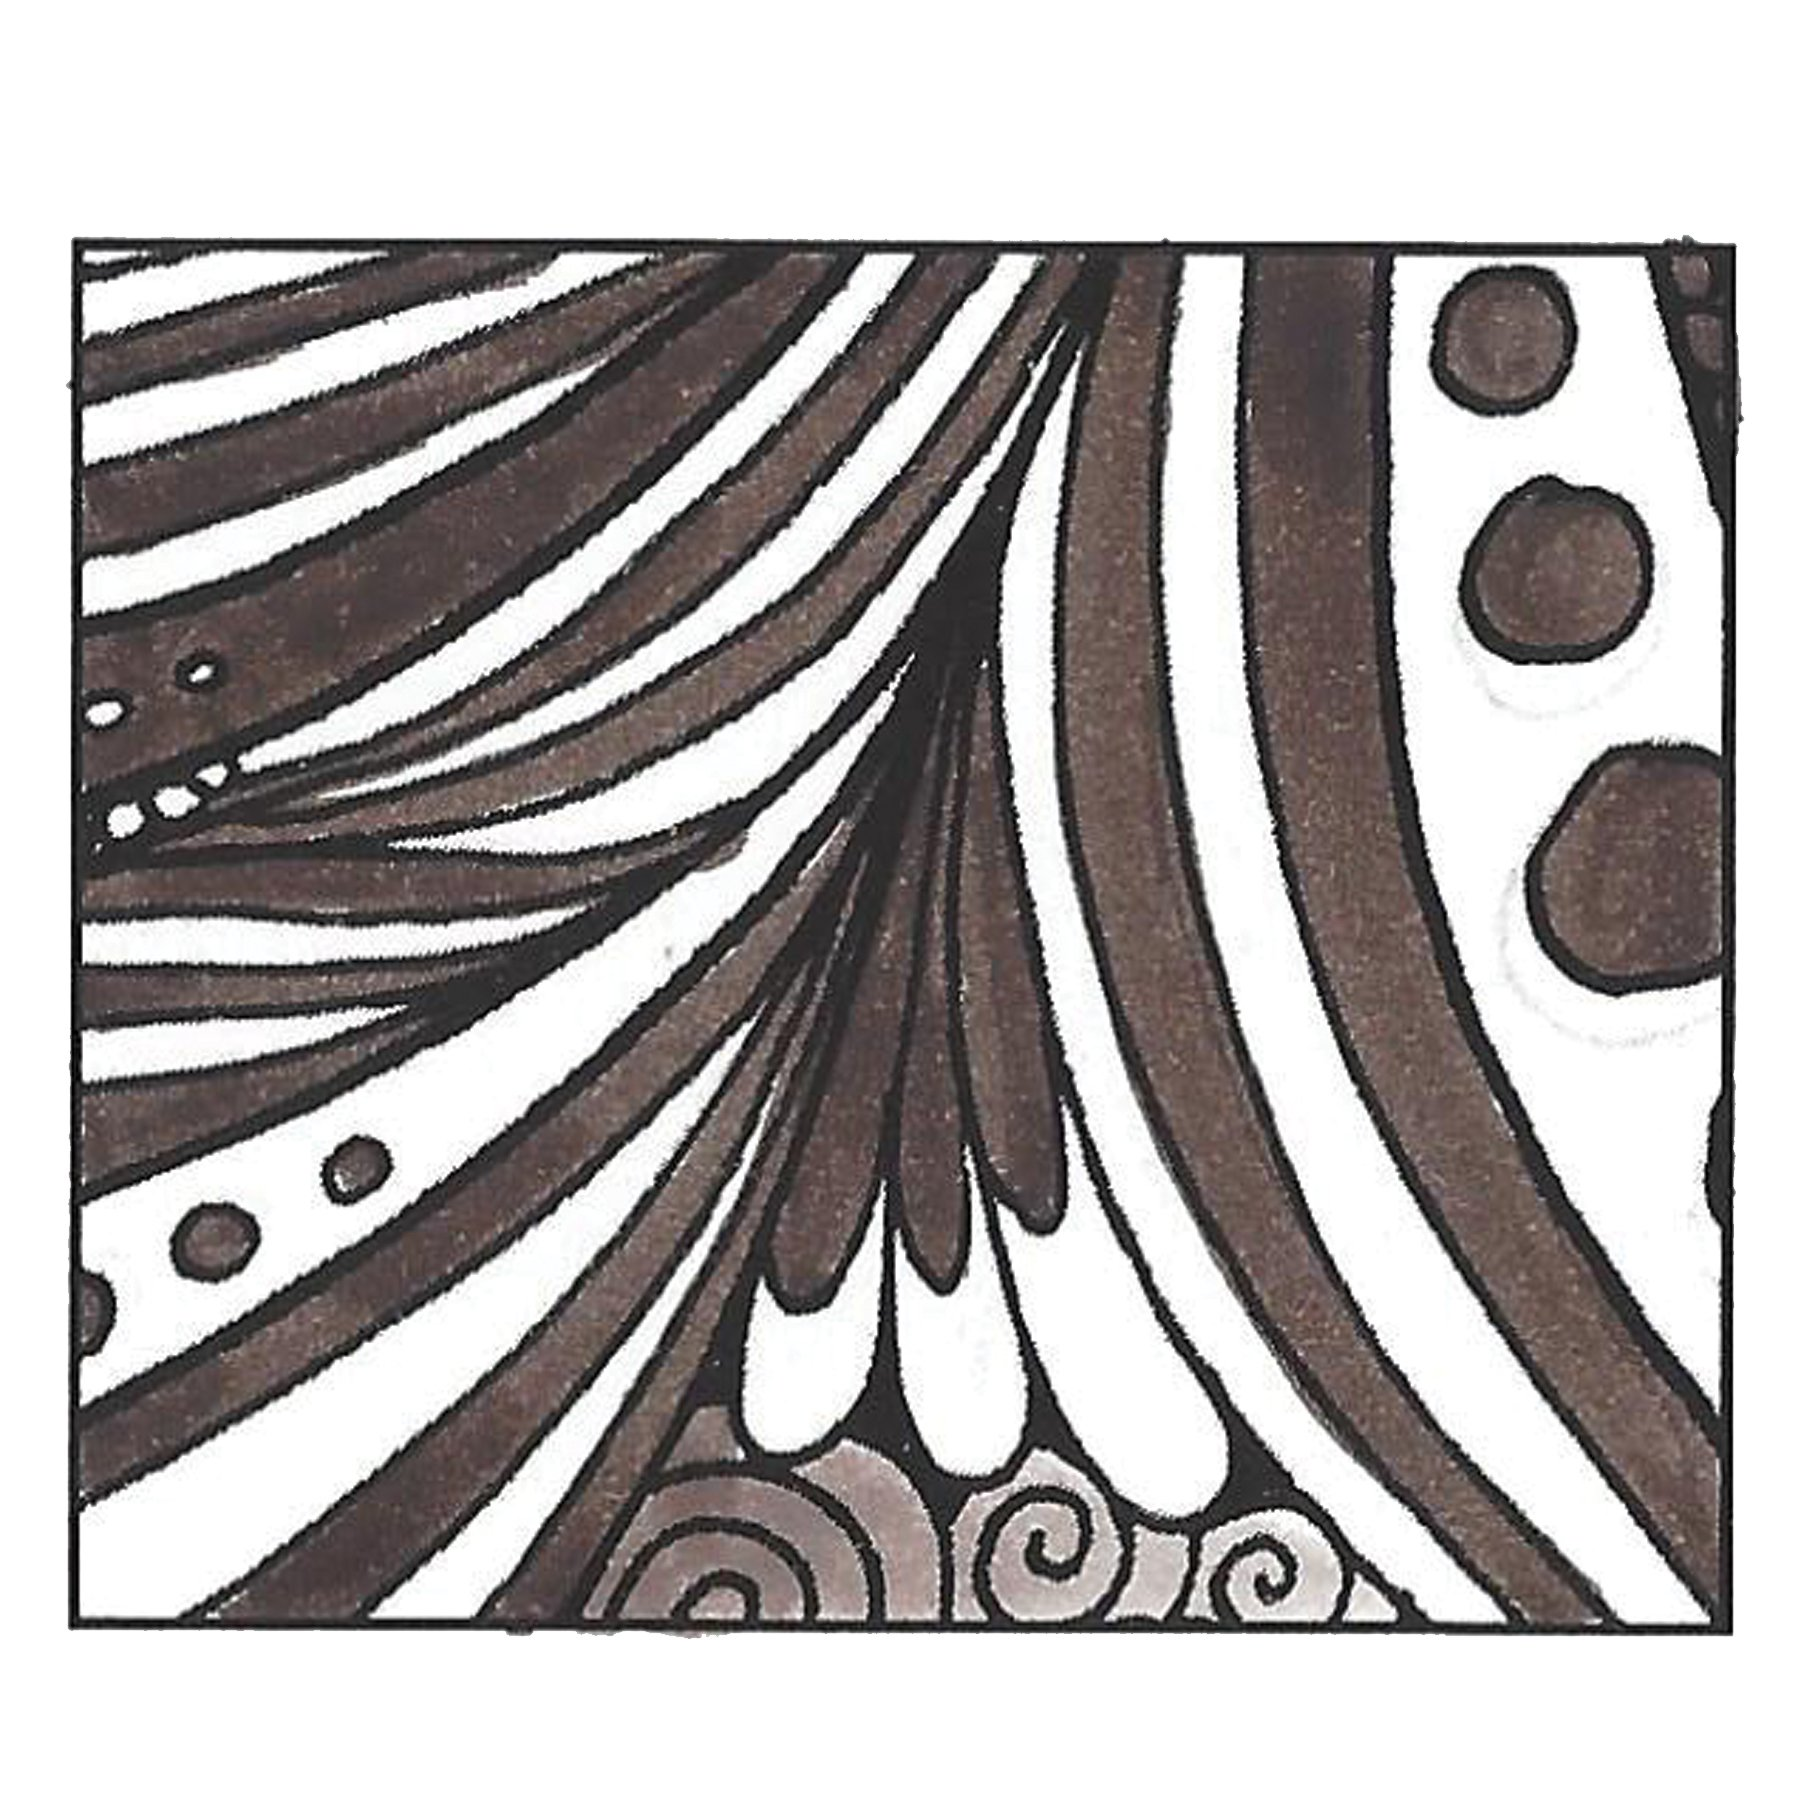 Tombow DBP-56602 Dual Brush Pen Art Marker, 879 - Brown, 1-Pack by Tombow (Image #4)